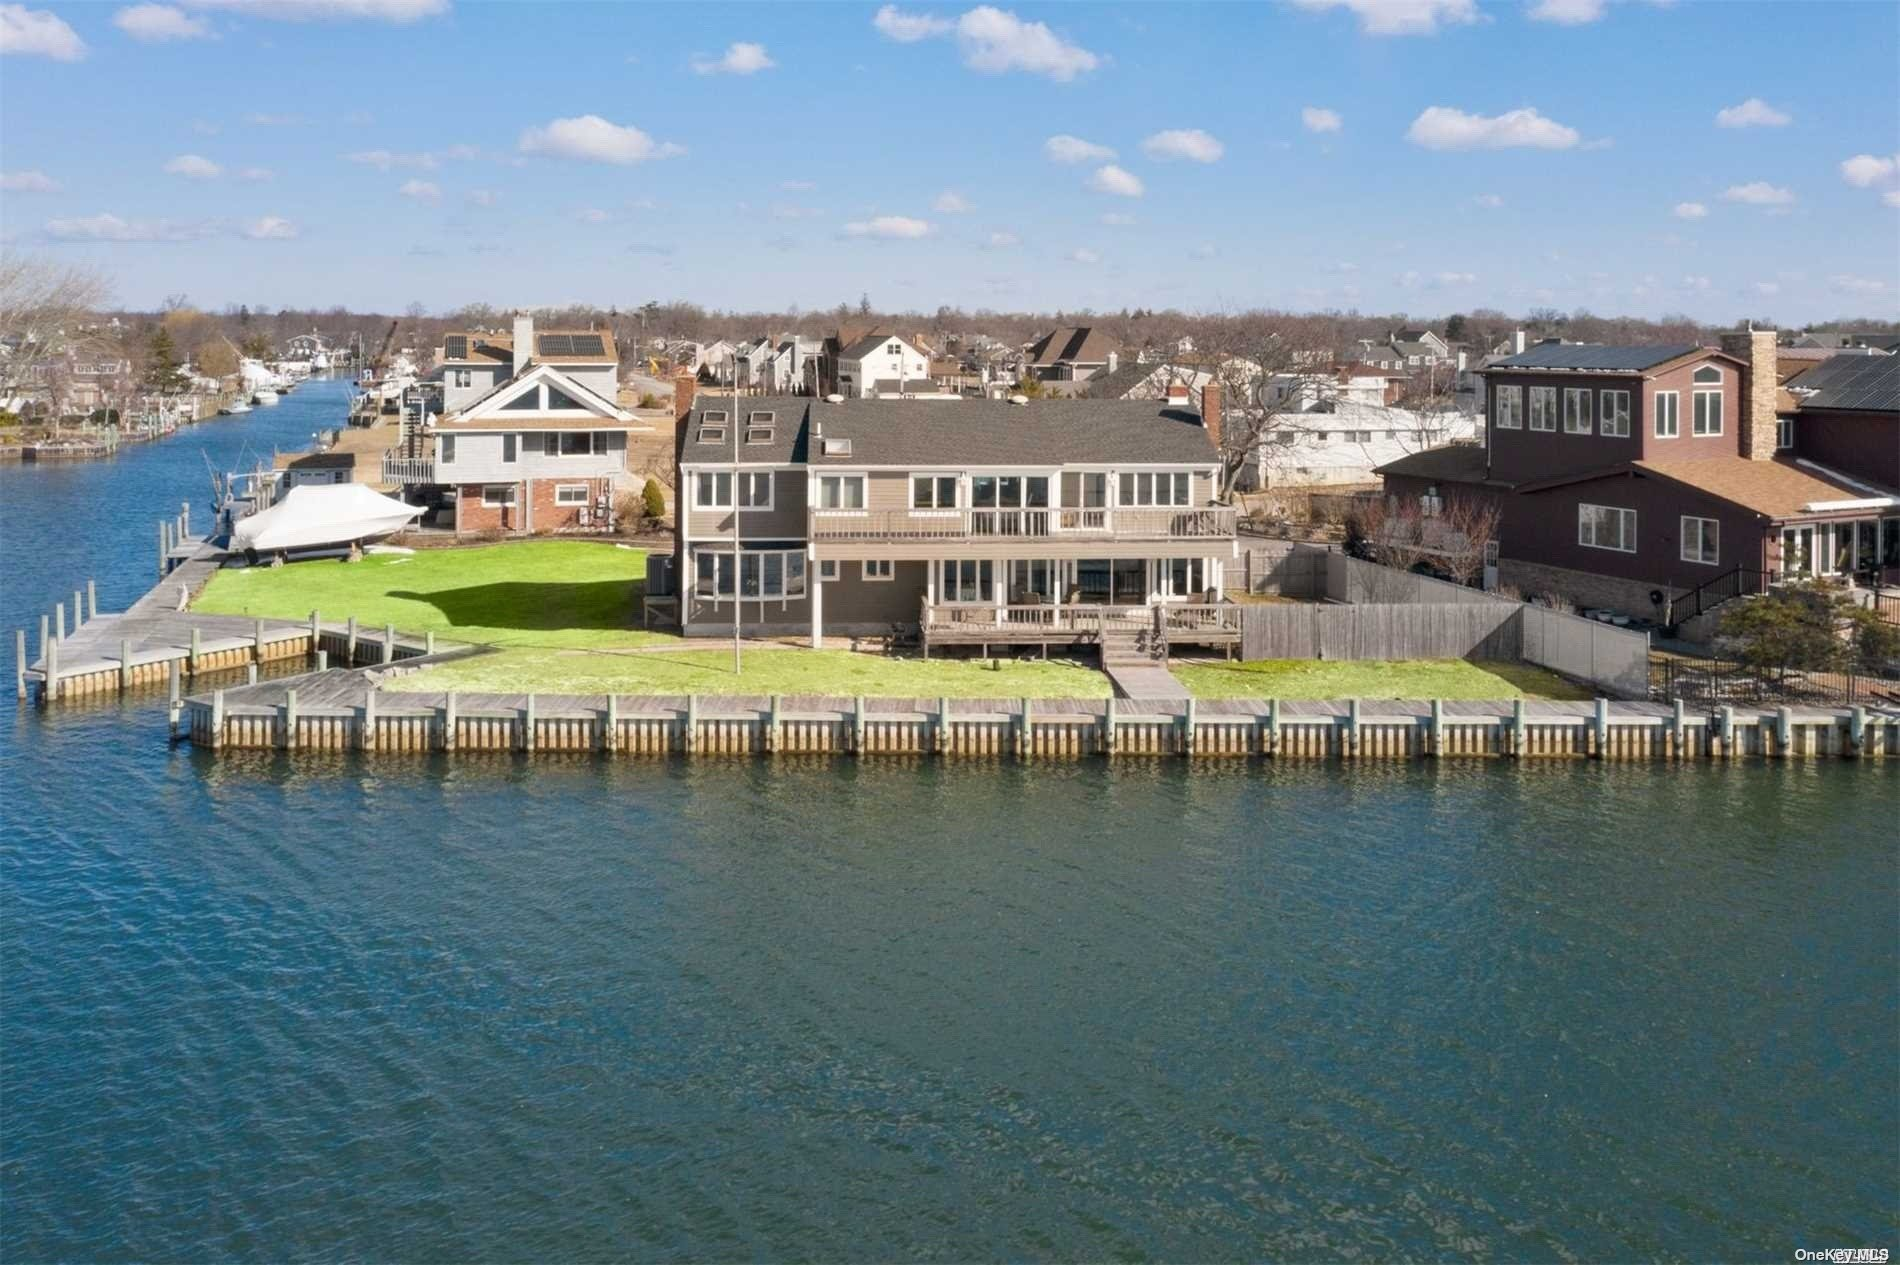 Open Bay Stunner With Absolutely Spectacular Panoramic Views Of Jones Beach, Lighthouse And Robert Moses. This Massive Colonial With A One Of A Kind Bayfront Location Is Waterfront Living At Its Best Featuring 165' Of Bulkhead , With A Boat Slip.  Open Layout First Floor Featuring A Den W/Fireplace And Amazing Views. Expansive Second Floor Featuring A Master Bedroom En Suite W/Full Bath, Balcony And Spectacular Views Of The Bay, 4 Additional Bedrooms And 2 Full Baths. This Location And Home Must Be Seen To Be Truly Appreciated!!